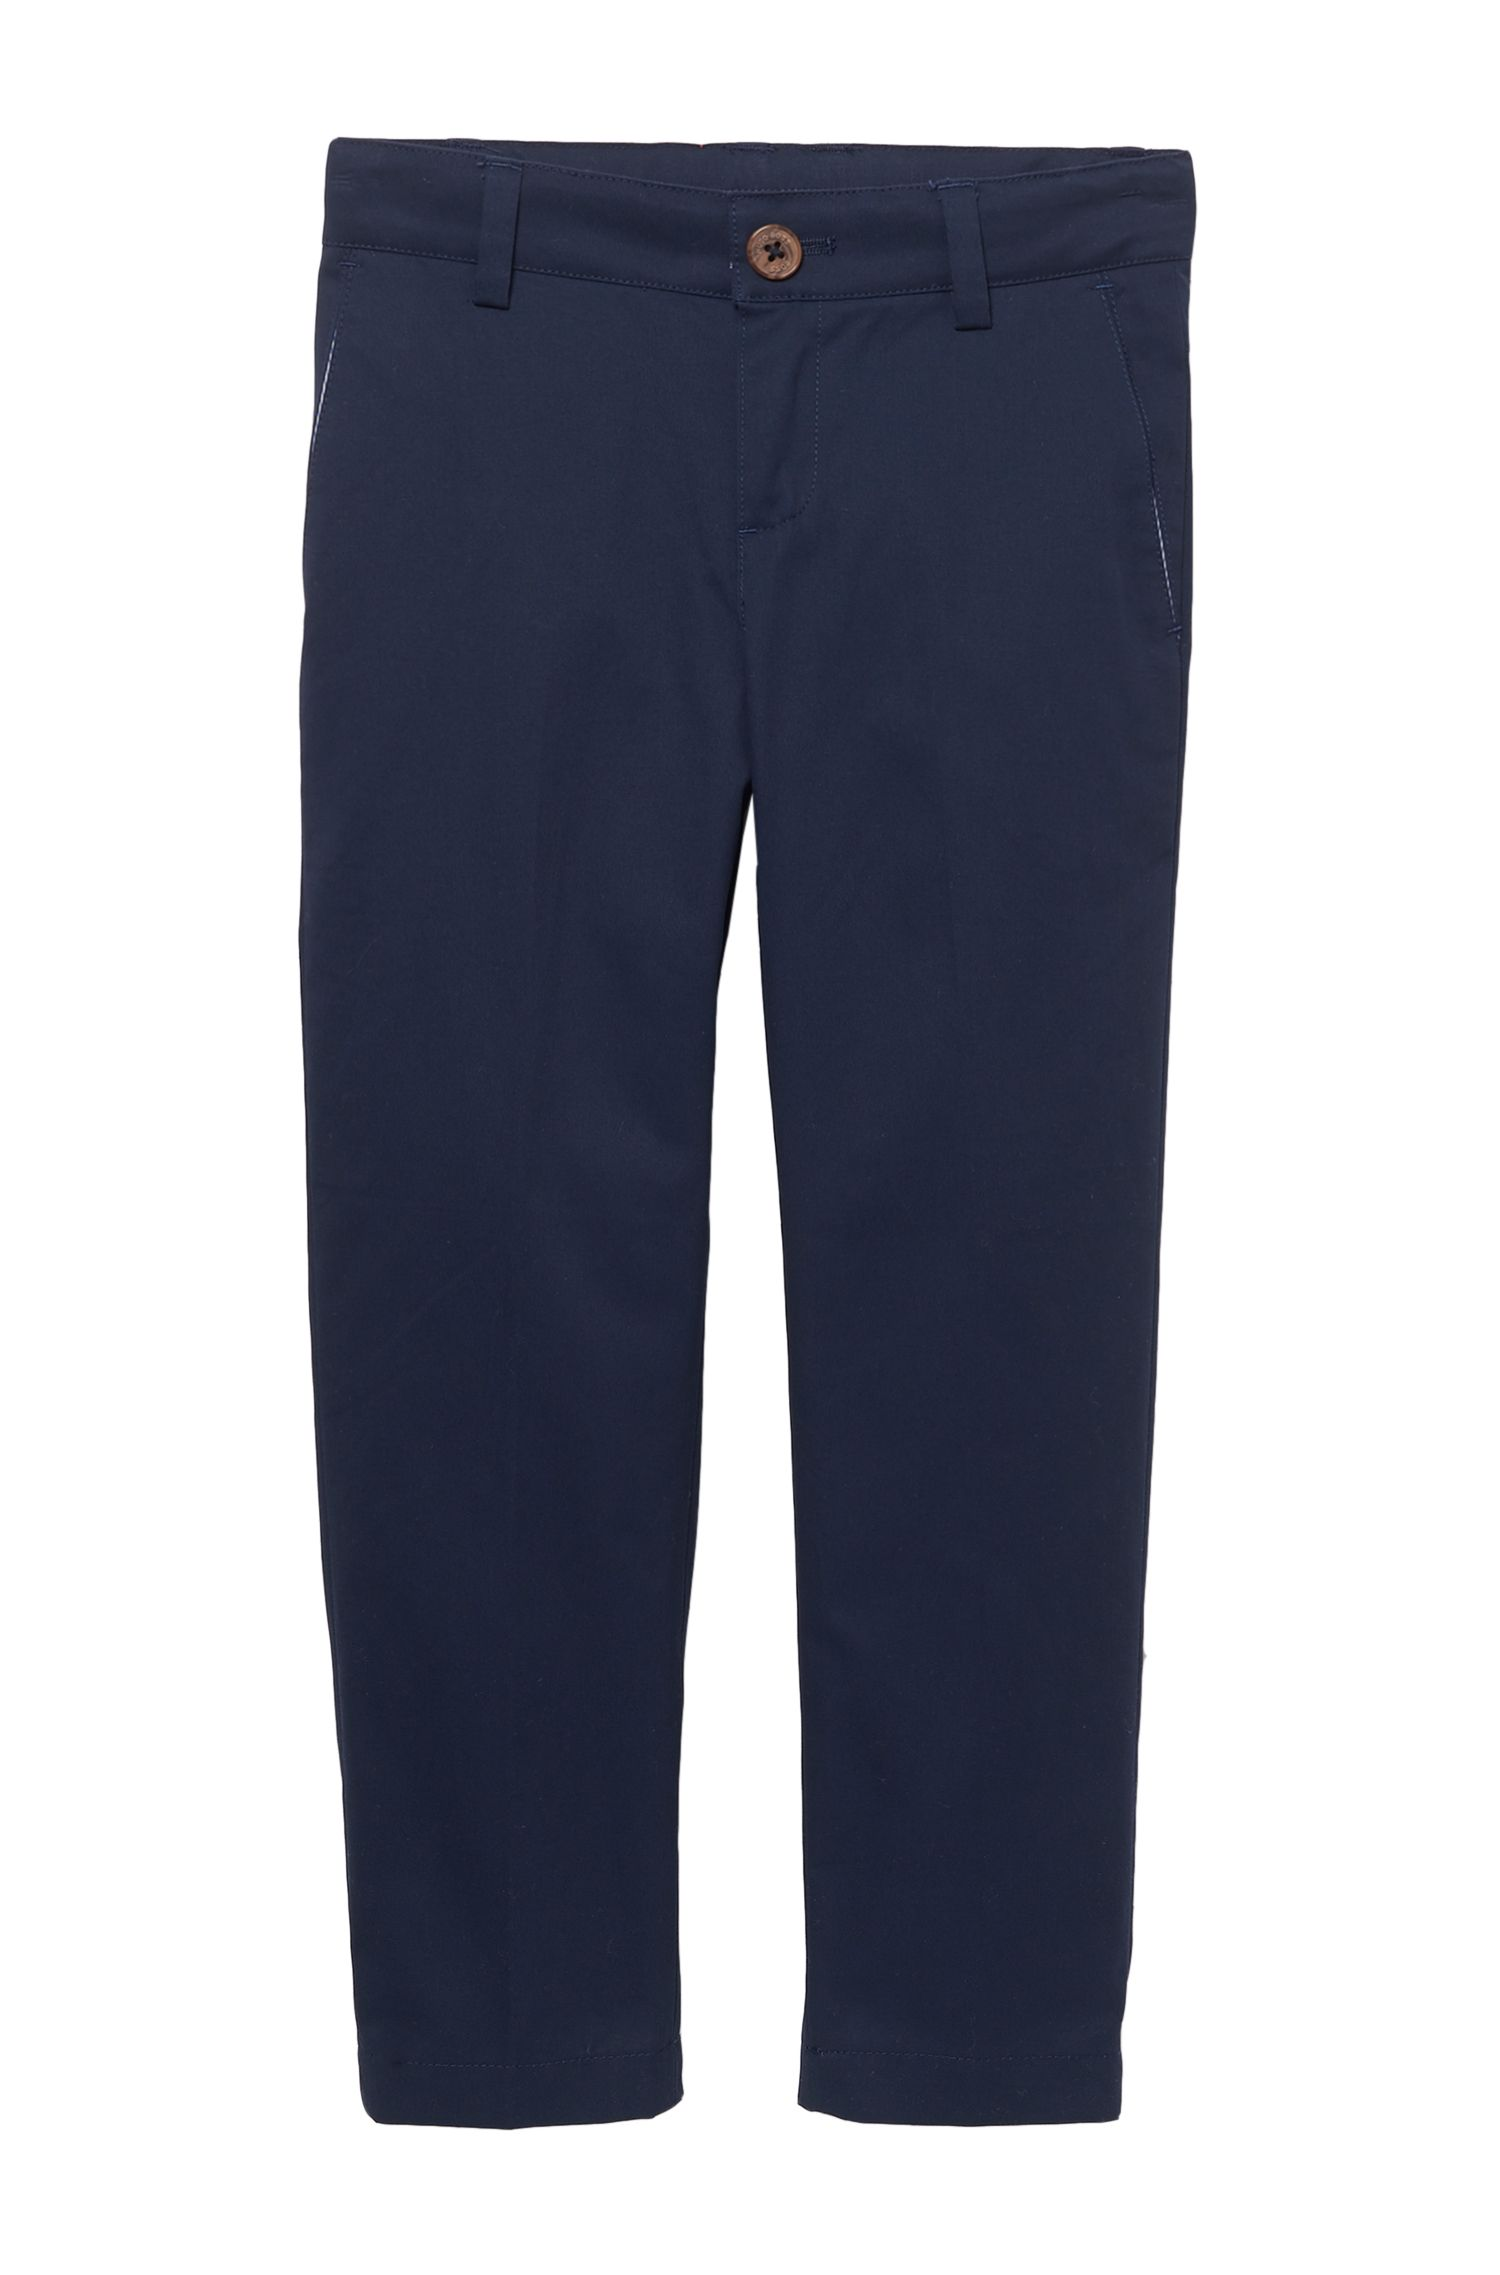 'J24399' | Boys Stretch Cotton Trousers